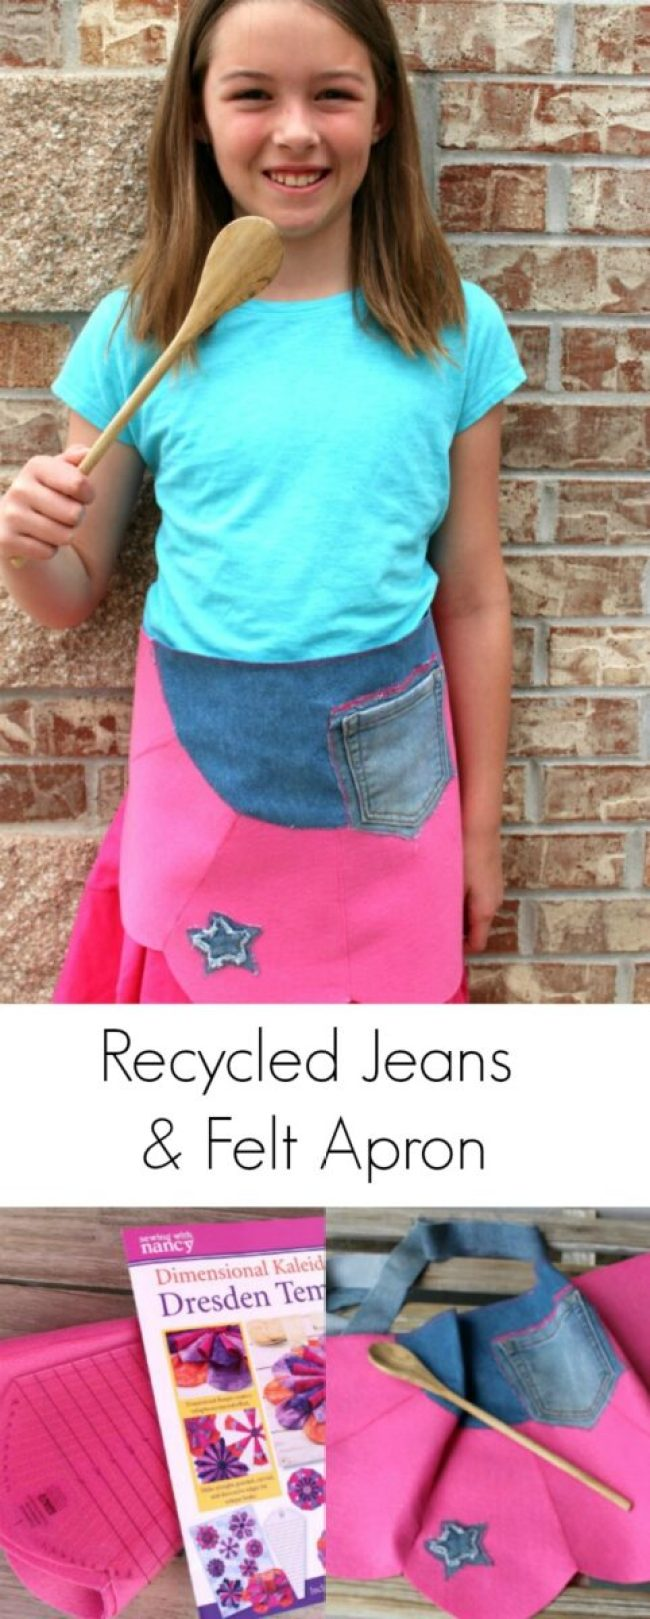 Recycled Jeans Apron with Dresden Template